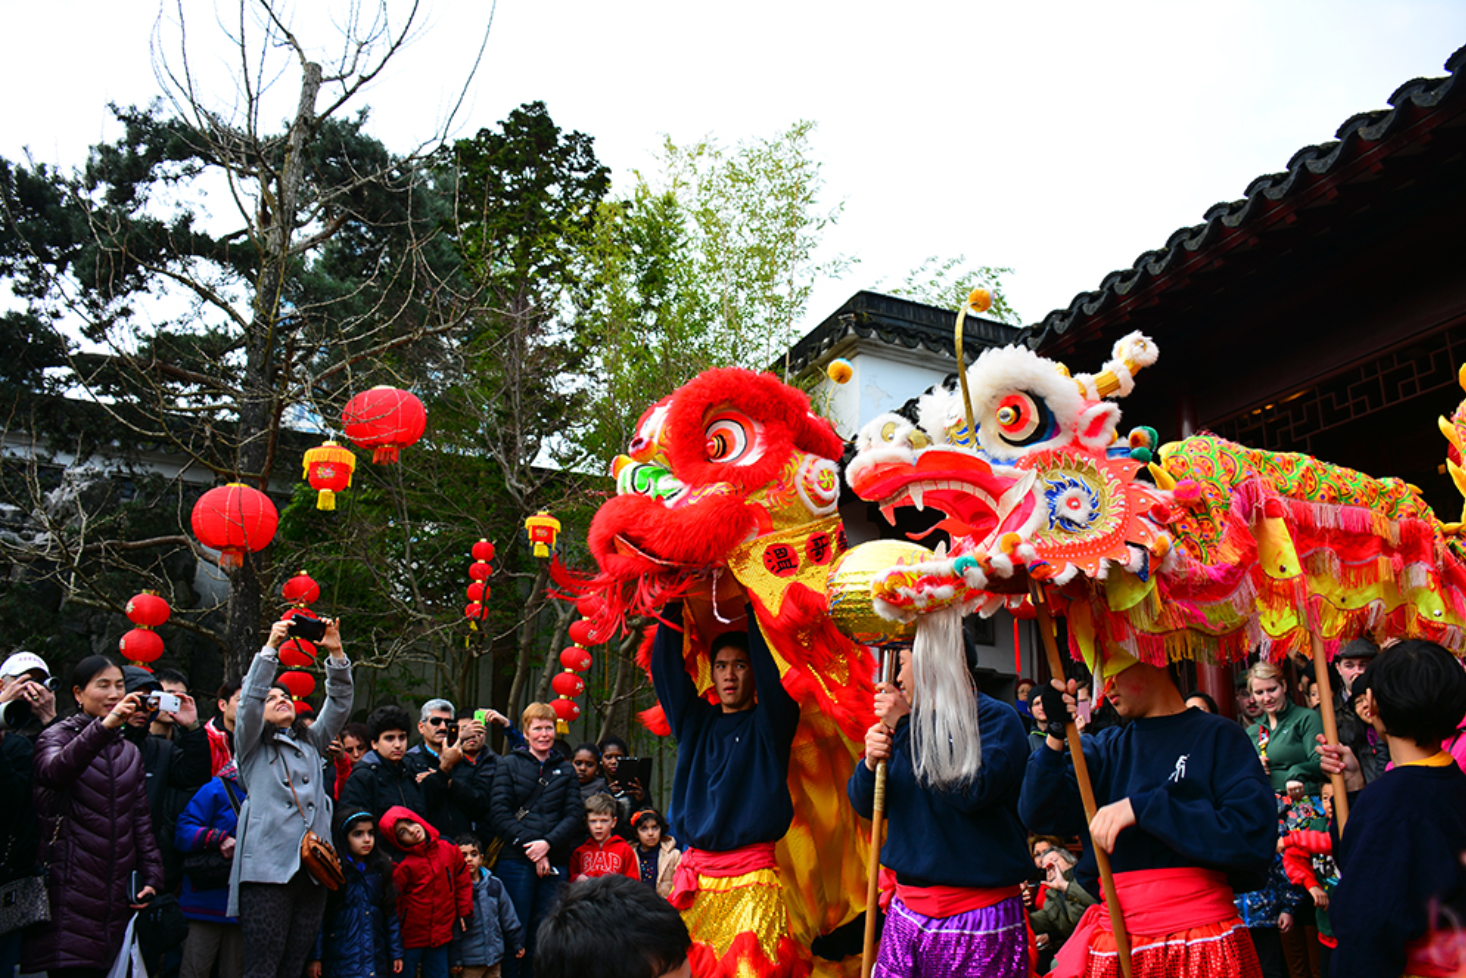 Get Stoked to Celebrate the Year of the Pig in Chinatown on February 10